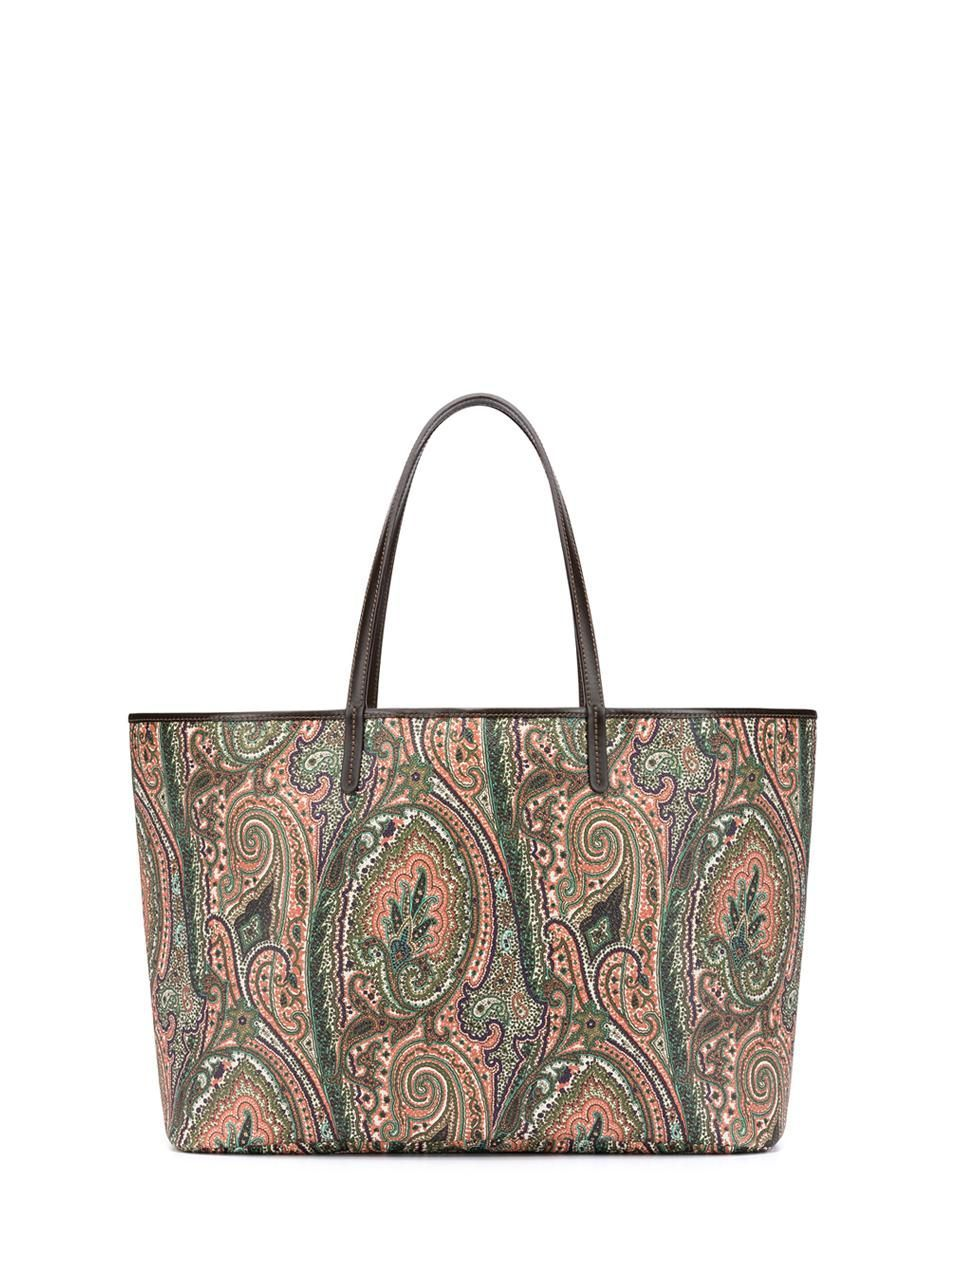 Etro tote bag Fall Winter 14 15 Collection. | Bags